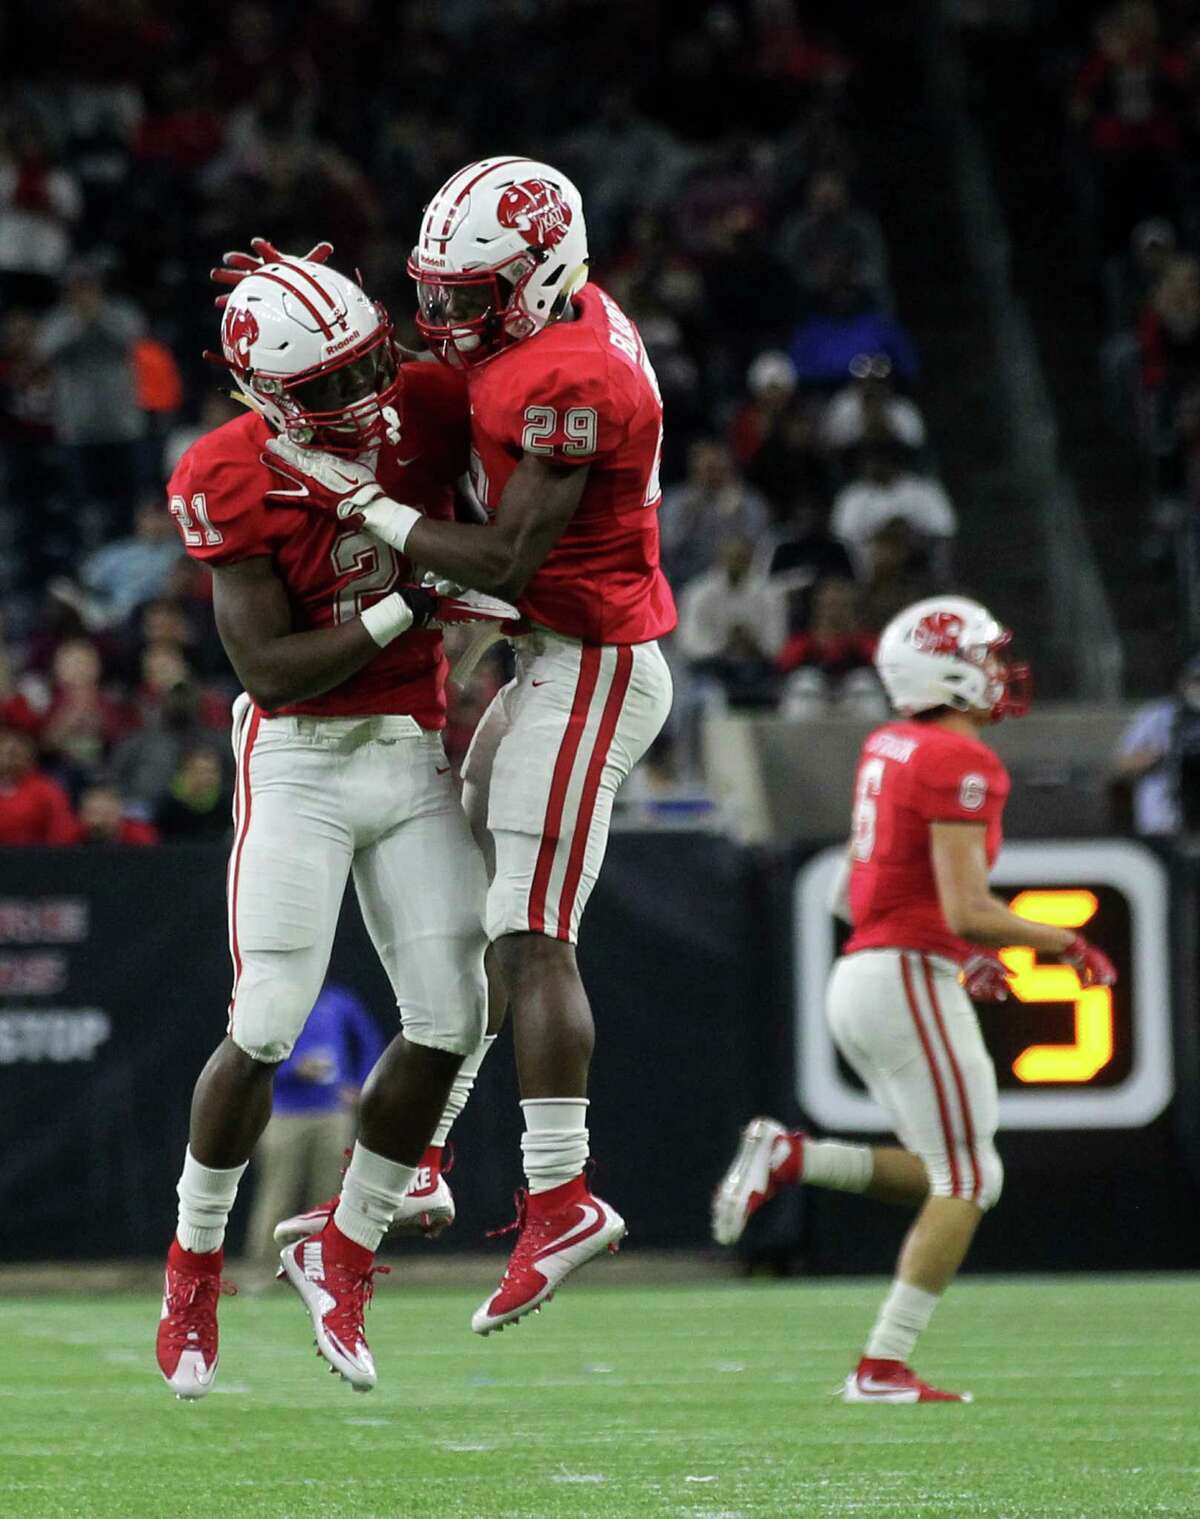 Katy's Tyler Pullig (21) celebrates his interception with DC Blades (29) in the first half of 6A Division II championship football game between Katy and Austin Lake Travis at NRG Stadium on Saturday, Dec. 19, 2015, in Houston.